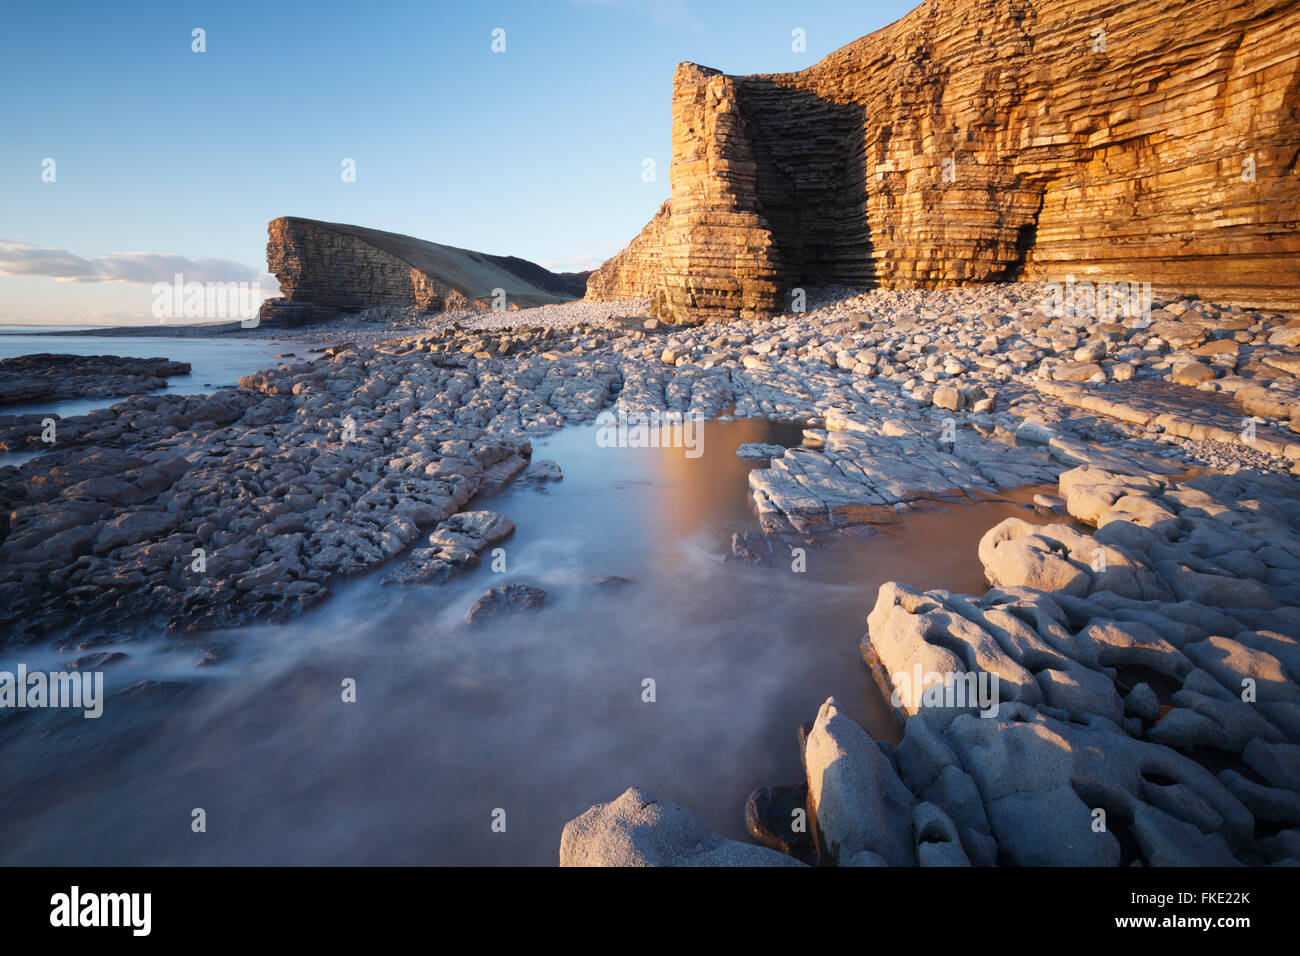 Nash Point. Glamorgan Heritage Coast. Vale of Glamorgan. Wales. - Stock Image